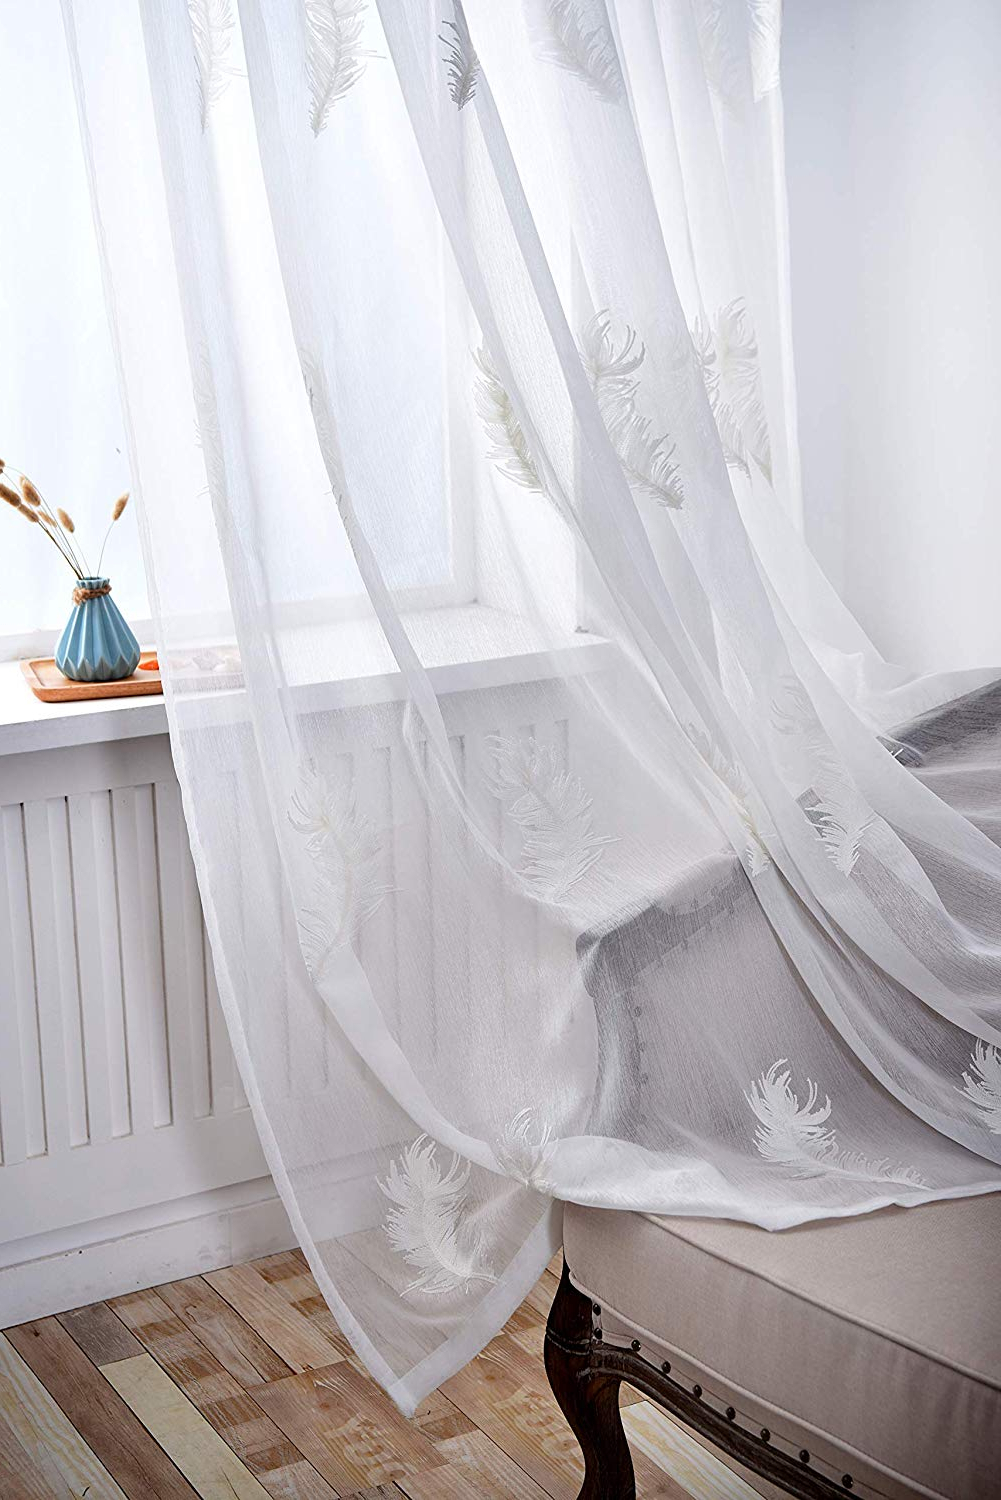 Well Liked Embroidered Ladybugs Window Curtain Pieces Intended For Suntown Home Decorations Pinch Pleat White Sheer Curtain For Bedroom Large Feather Embroidery Window Panels/treatment 85 Inches Long For Living Room – (View 7 of 20)